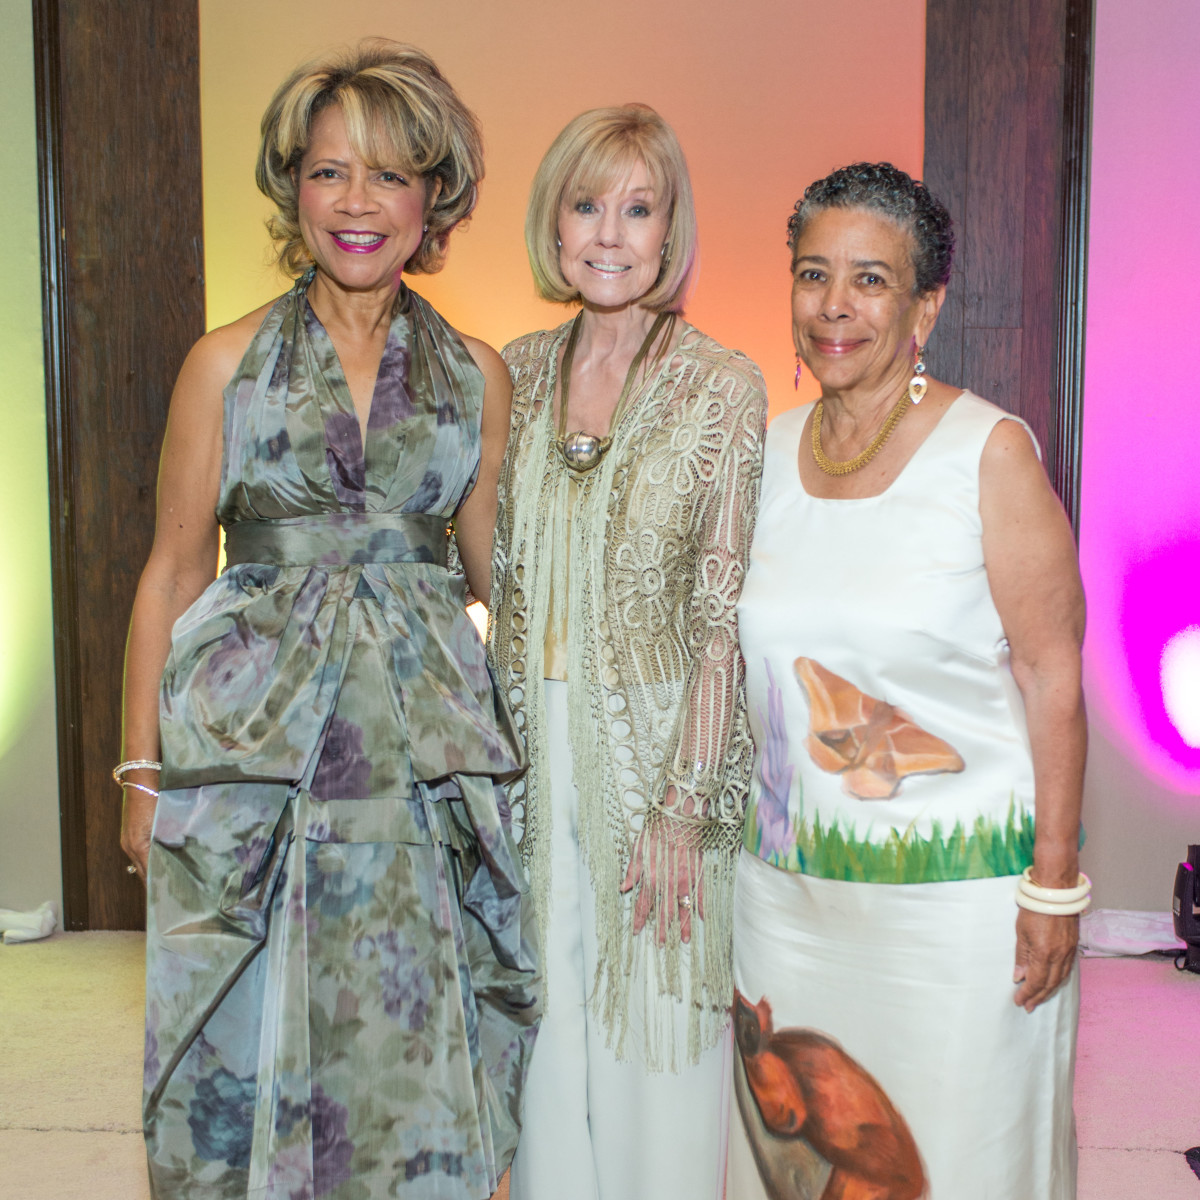 For The Sake of Art, Merele Yarborough, Shelly Marcus, Alvia Wardlaw